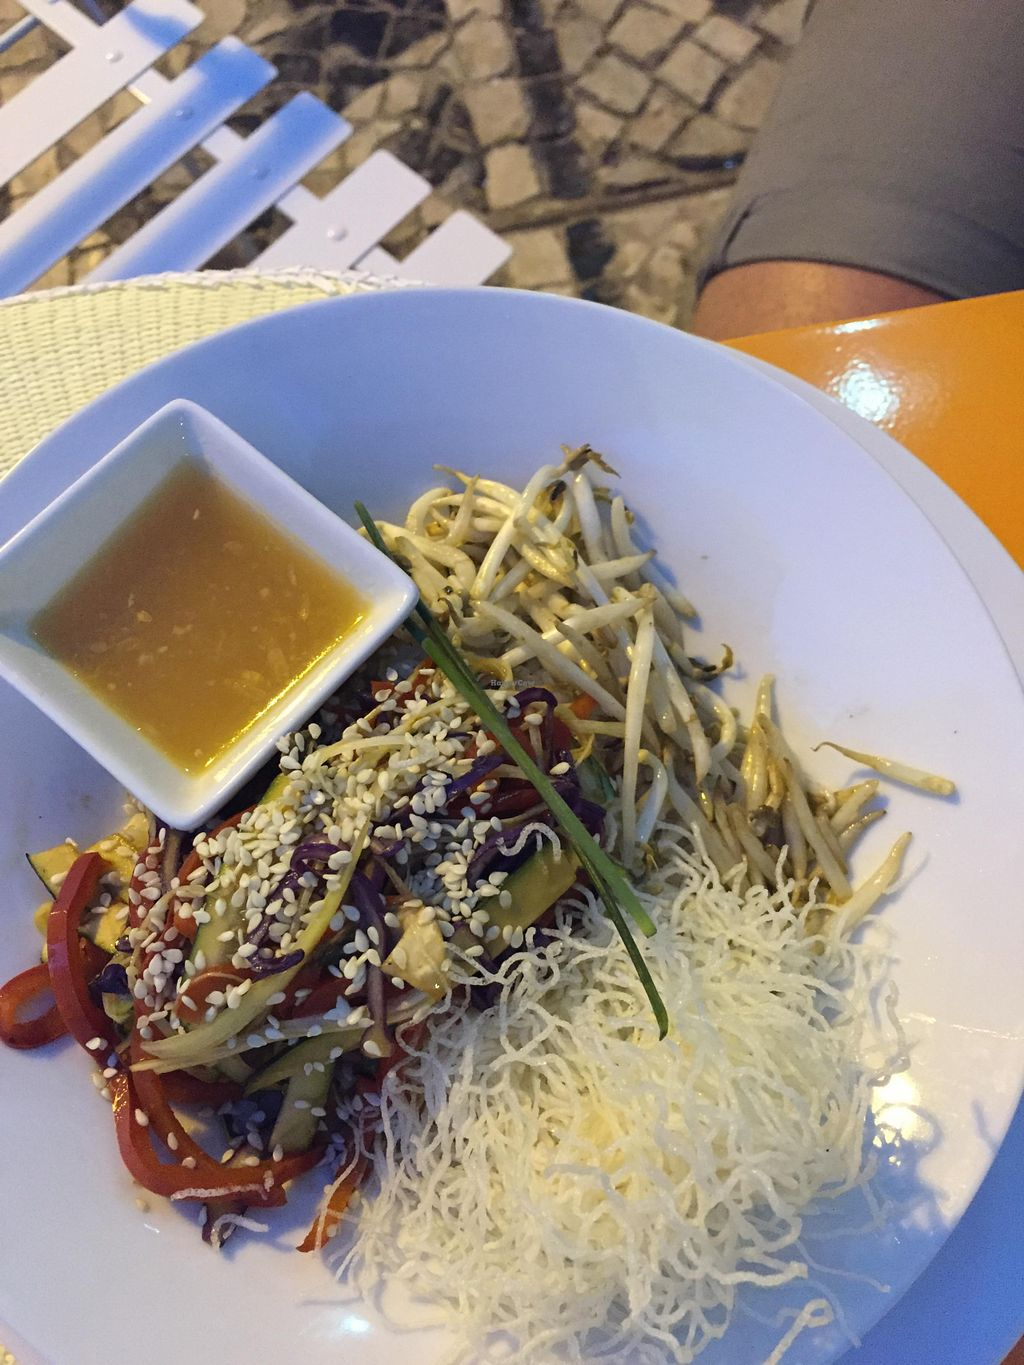 """Photo of CLOSED: Didi Cafe  by <a href=""""/members/profile/wooly"""">wooly</a> <br/>The Thai Salad <br/> August 6, 2015  - <a href='/contact/abuse/image/61120/112534'>Report</a>"""